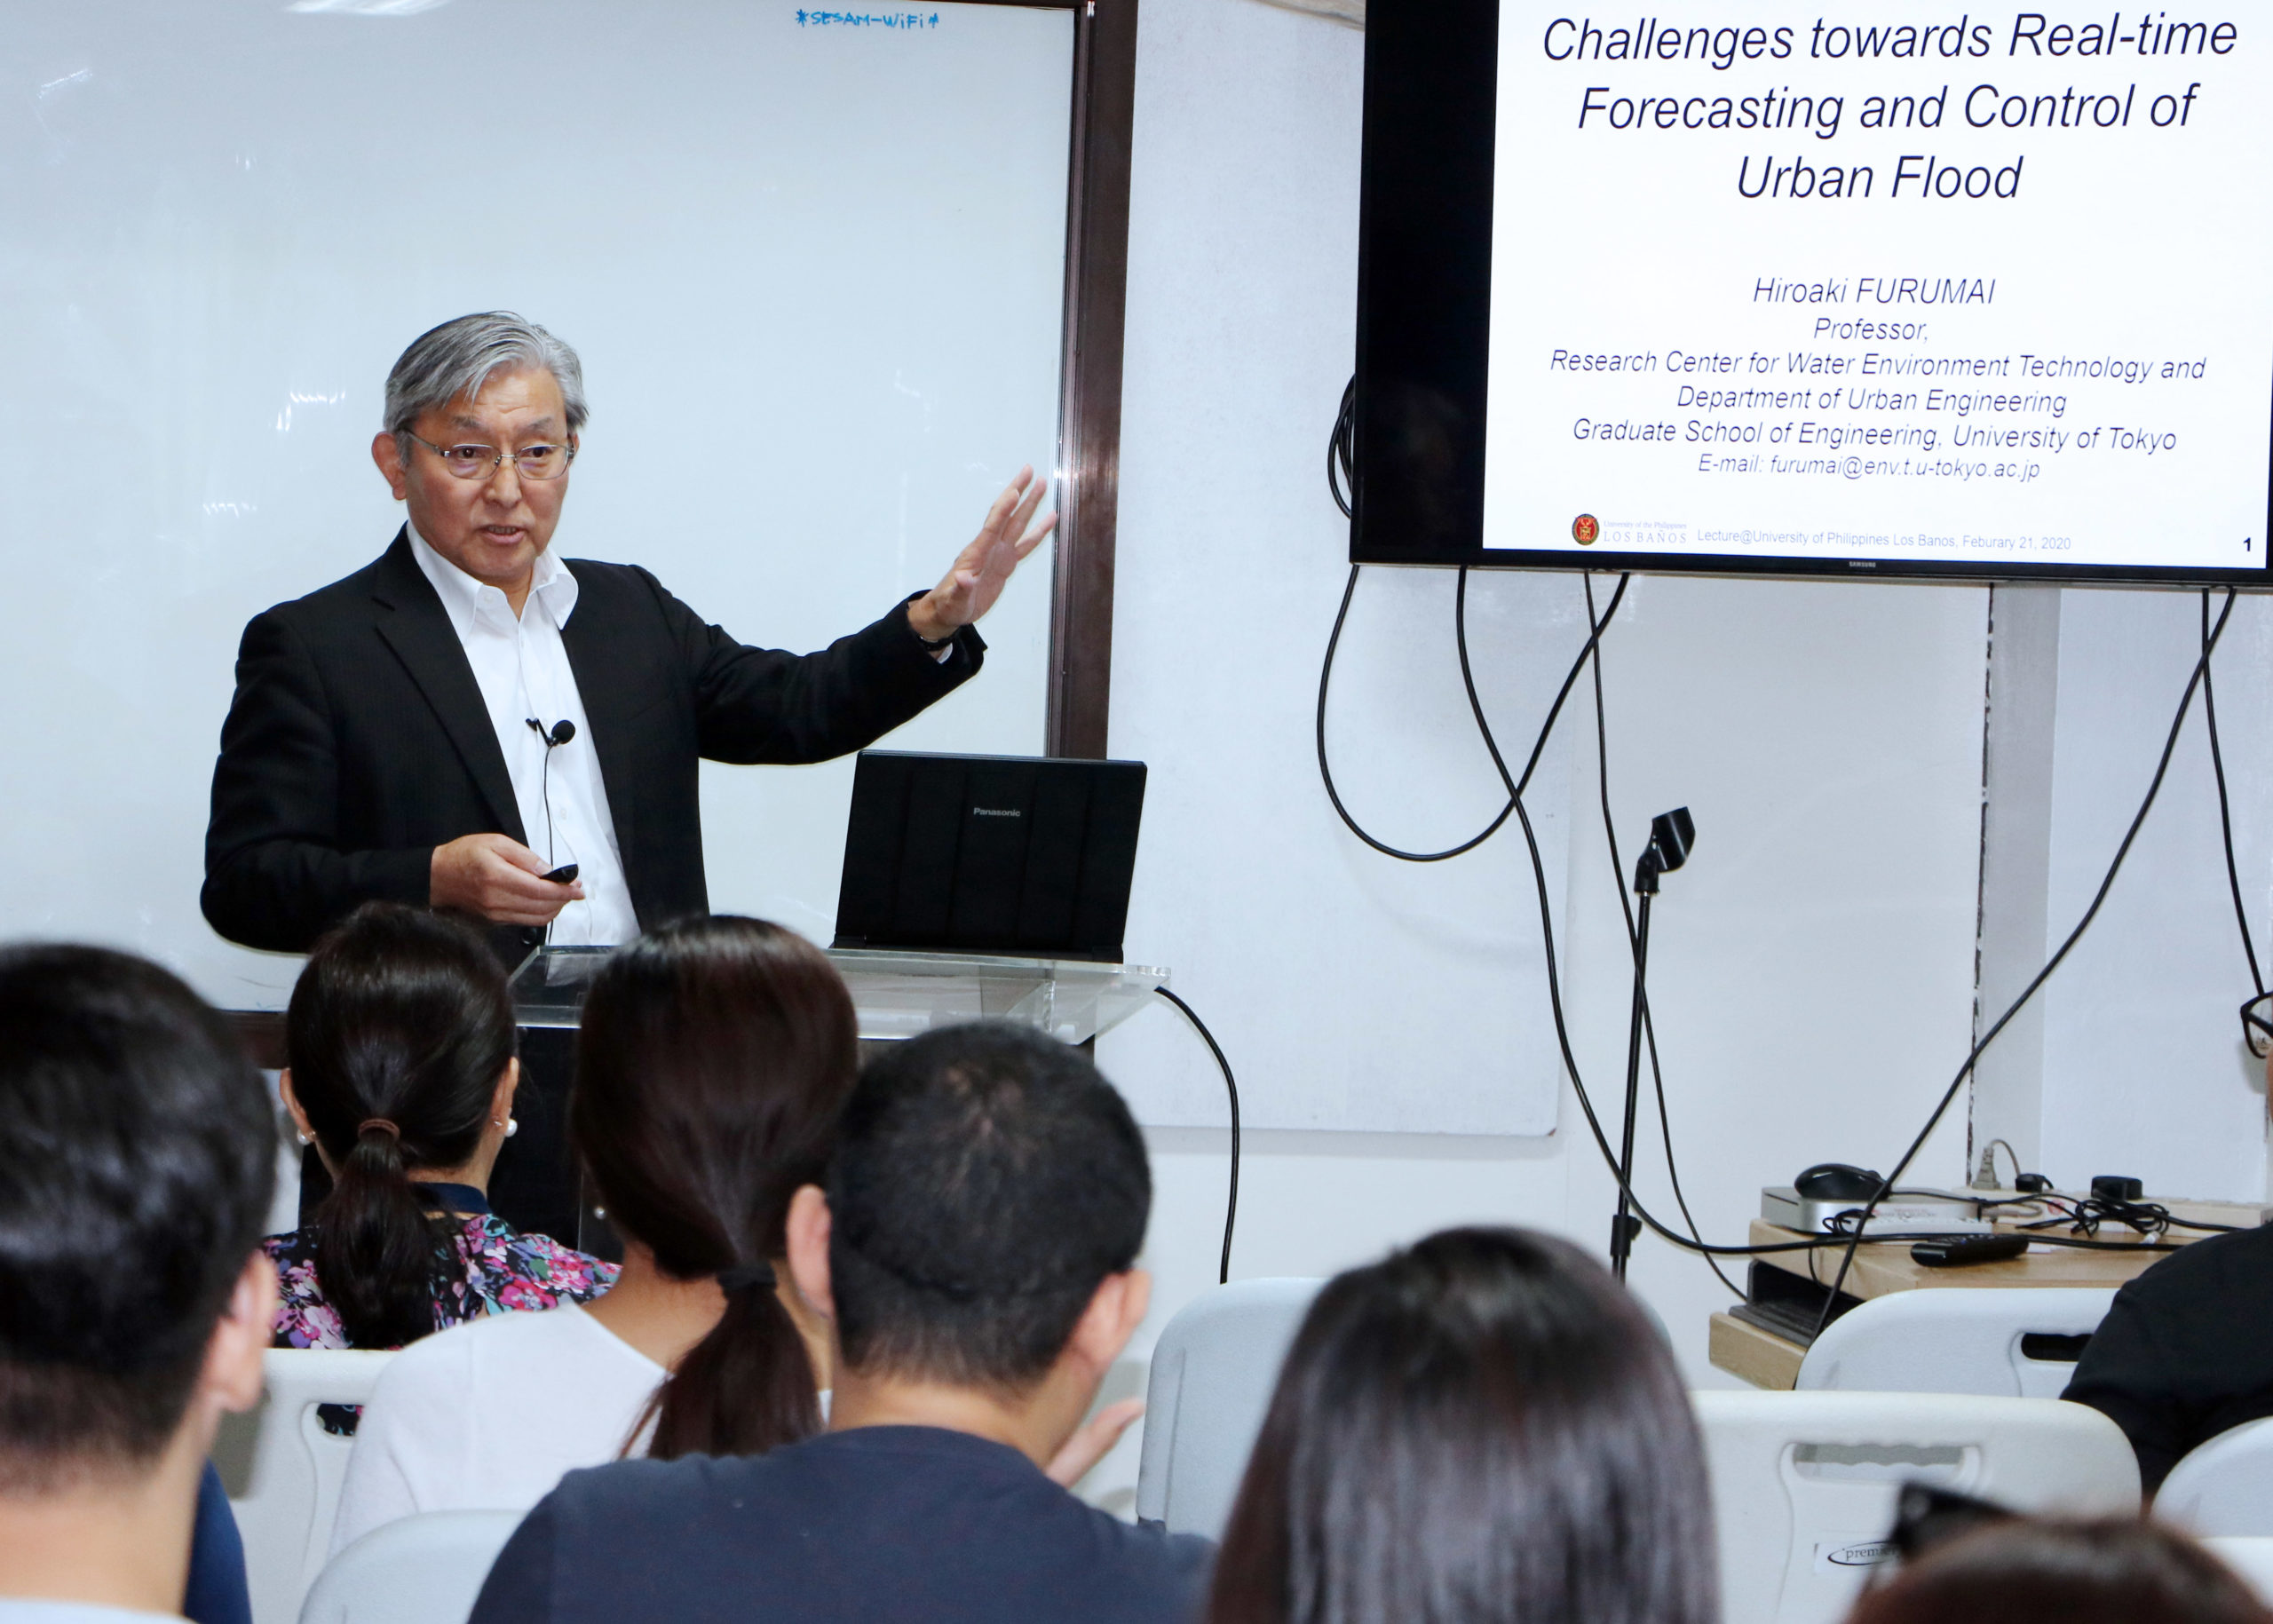 Integrated Counter Measures Key for Flood Control – Japanese Professor